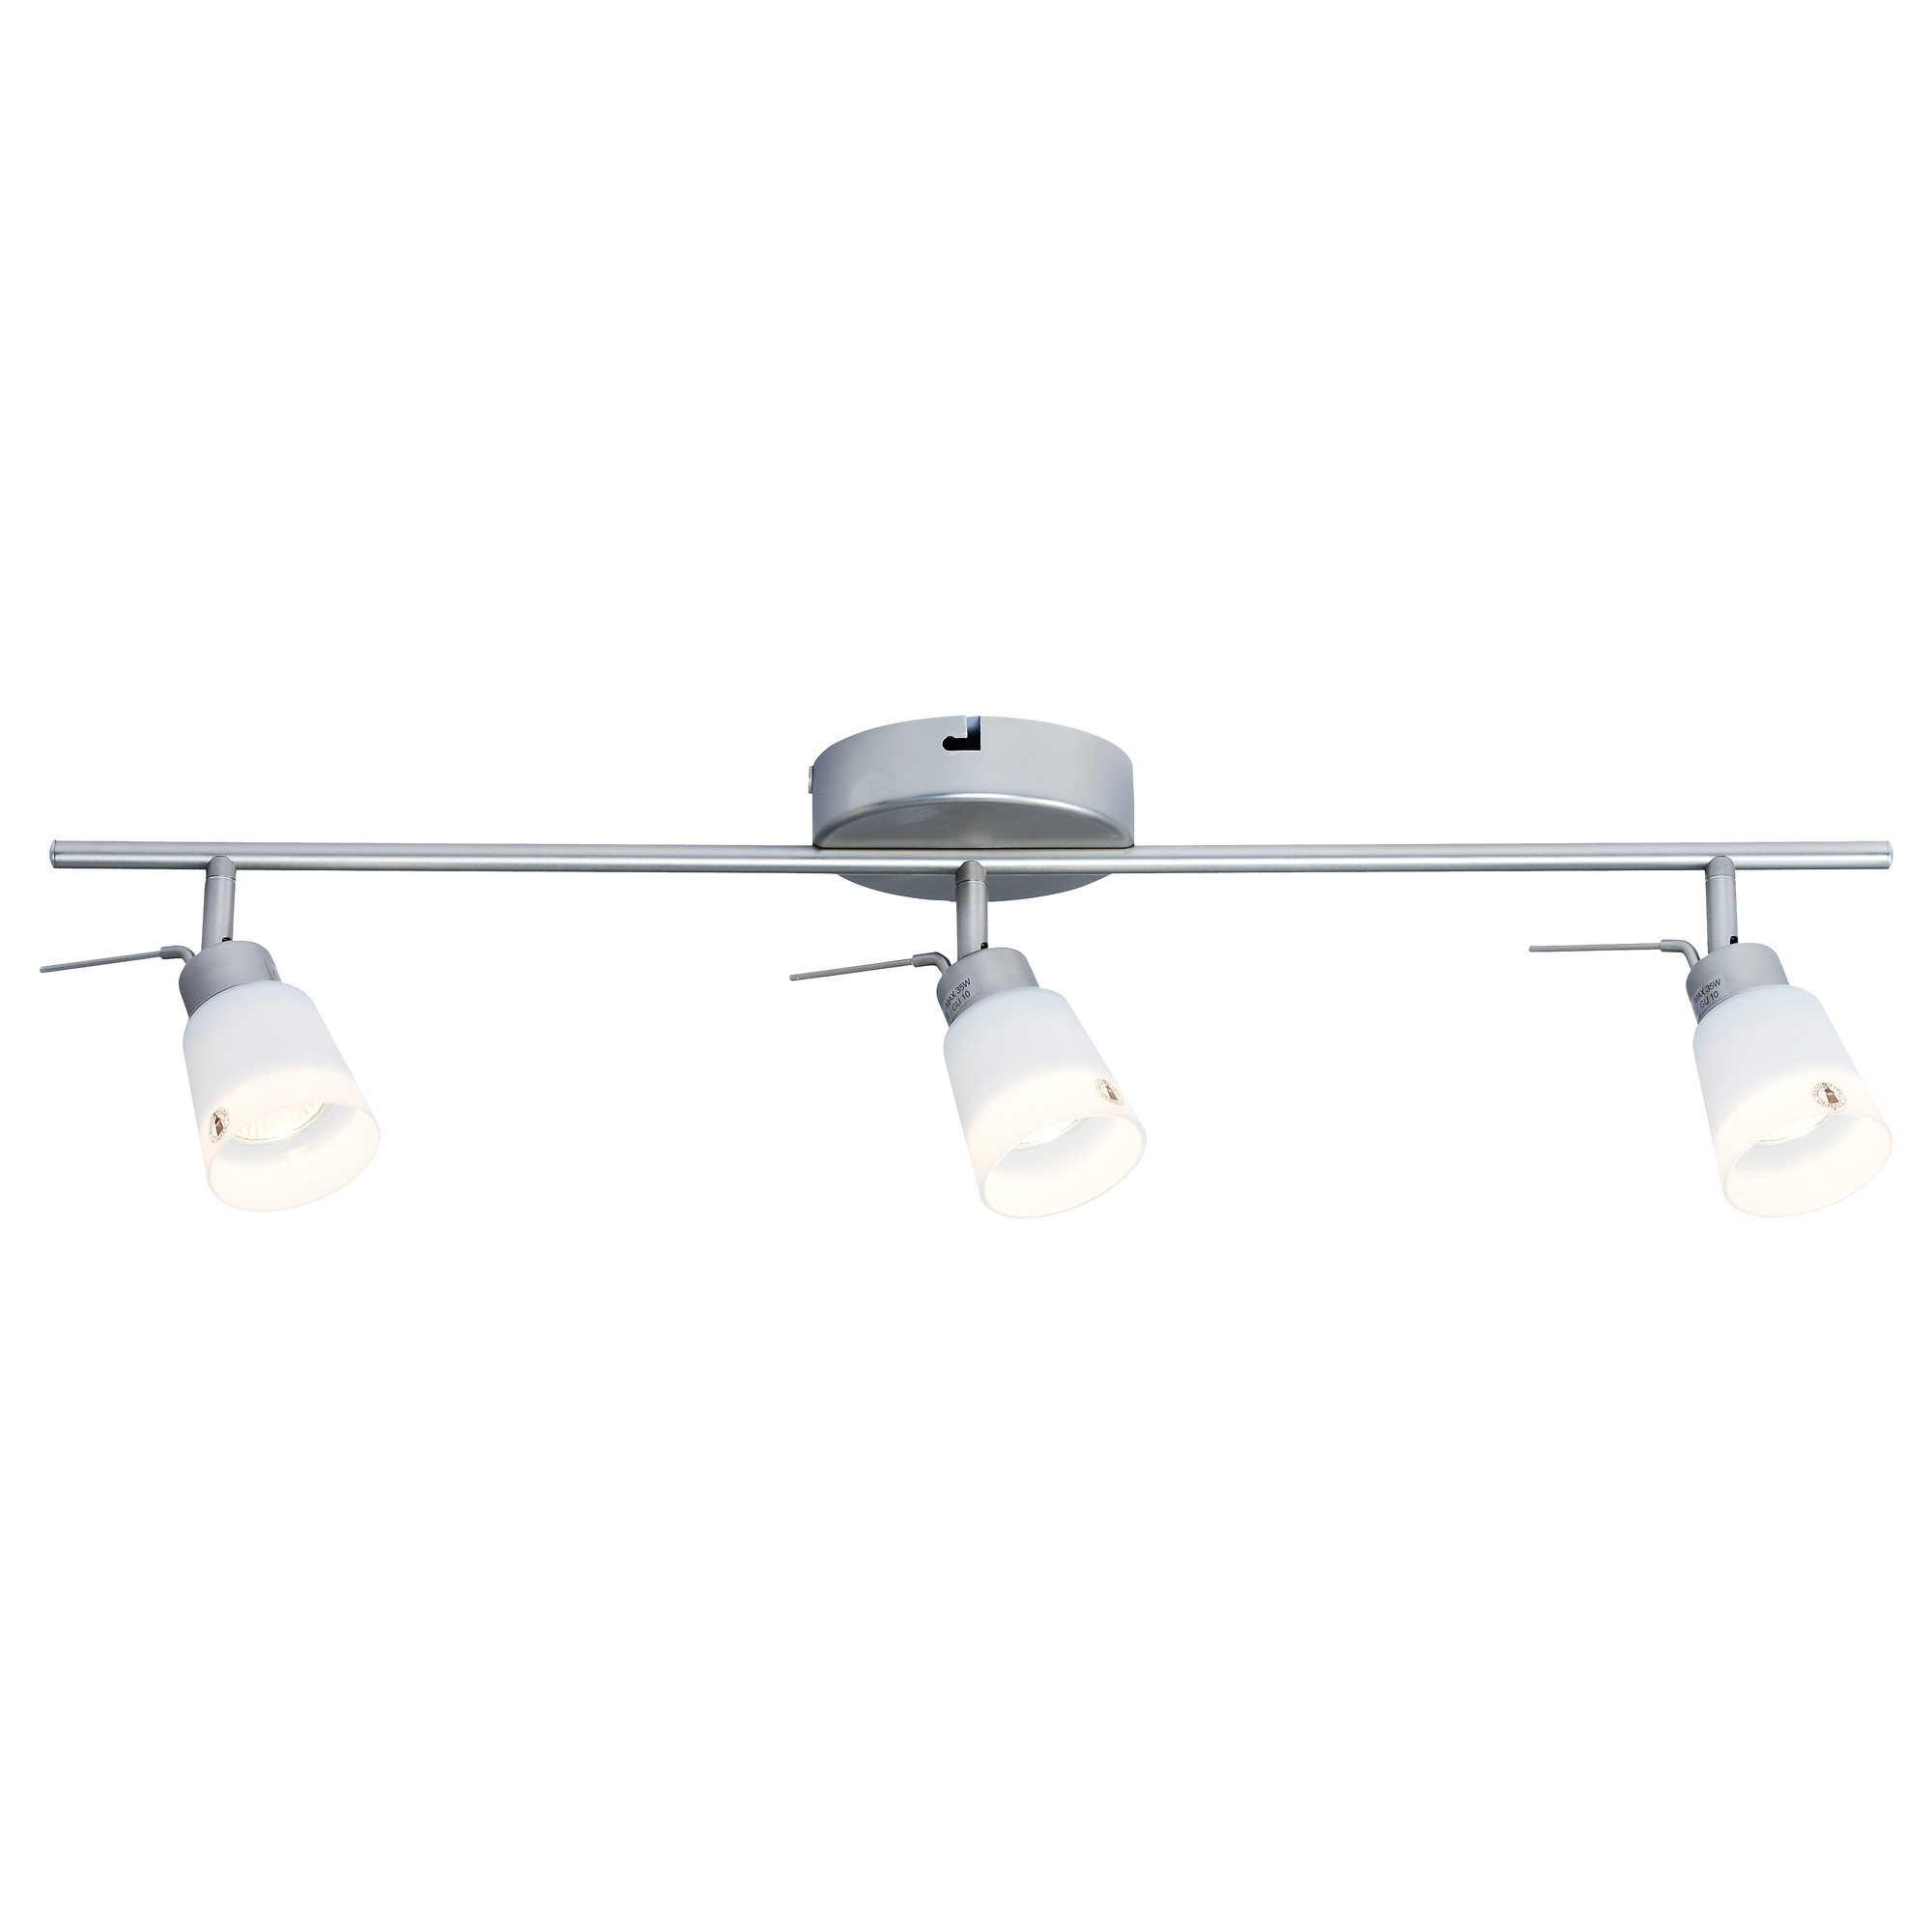 BASISK Ceiling Track Spotlights Nickel Plated White HOME MUST - Ikea kitchen lighting ceiling